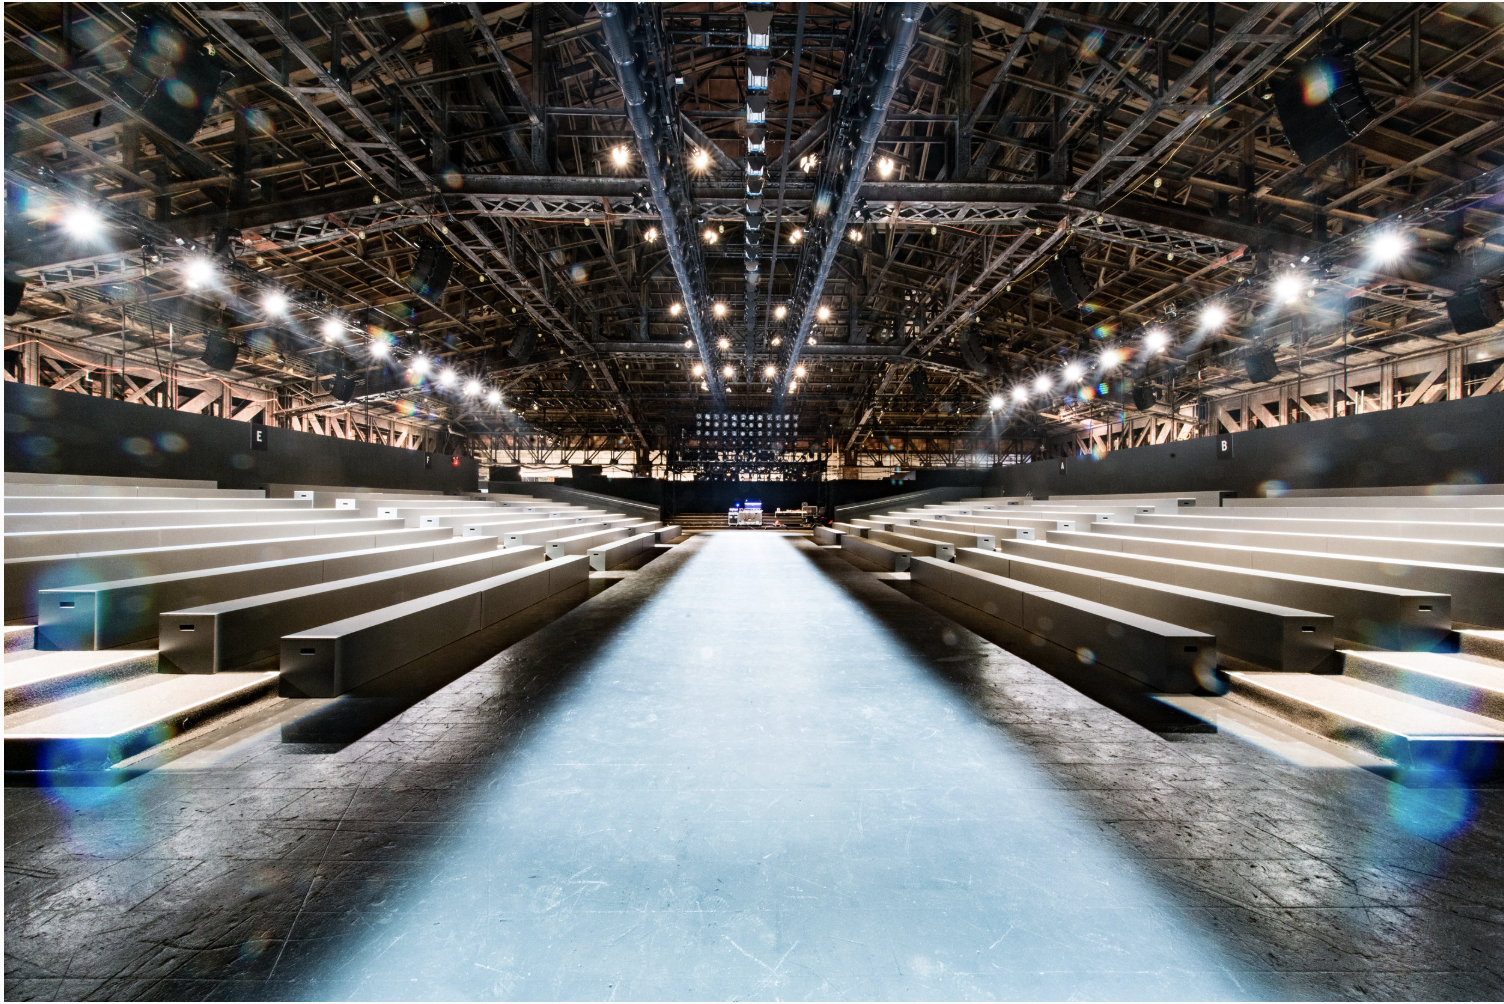 """IMG FASHION - Beginning in 2002, LDJ became onsite venue and show operations manager for the 70+ shows each season in """"The Tents."""" In 2013, we became the production agency of record, handling all aspects of the design, production and operation of the 100,000+ square foot facility hosting of 70+ shows and 20+ sponsor activations. In 2015, we took lead on moving and re-engineering NYFW after 22 years in tented structures entirely redesigning the runway venues, the guest experience, and flow of the event."""